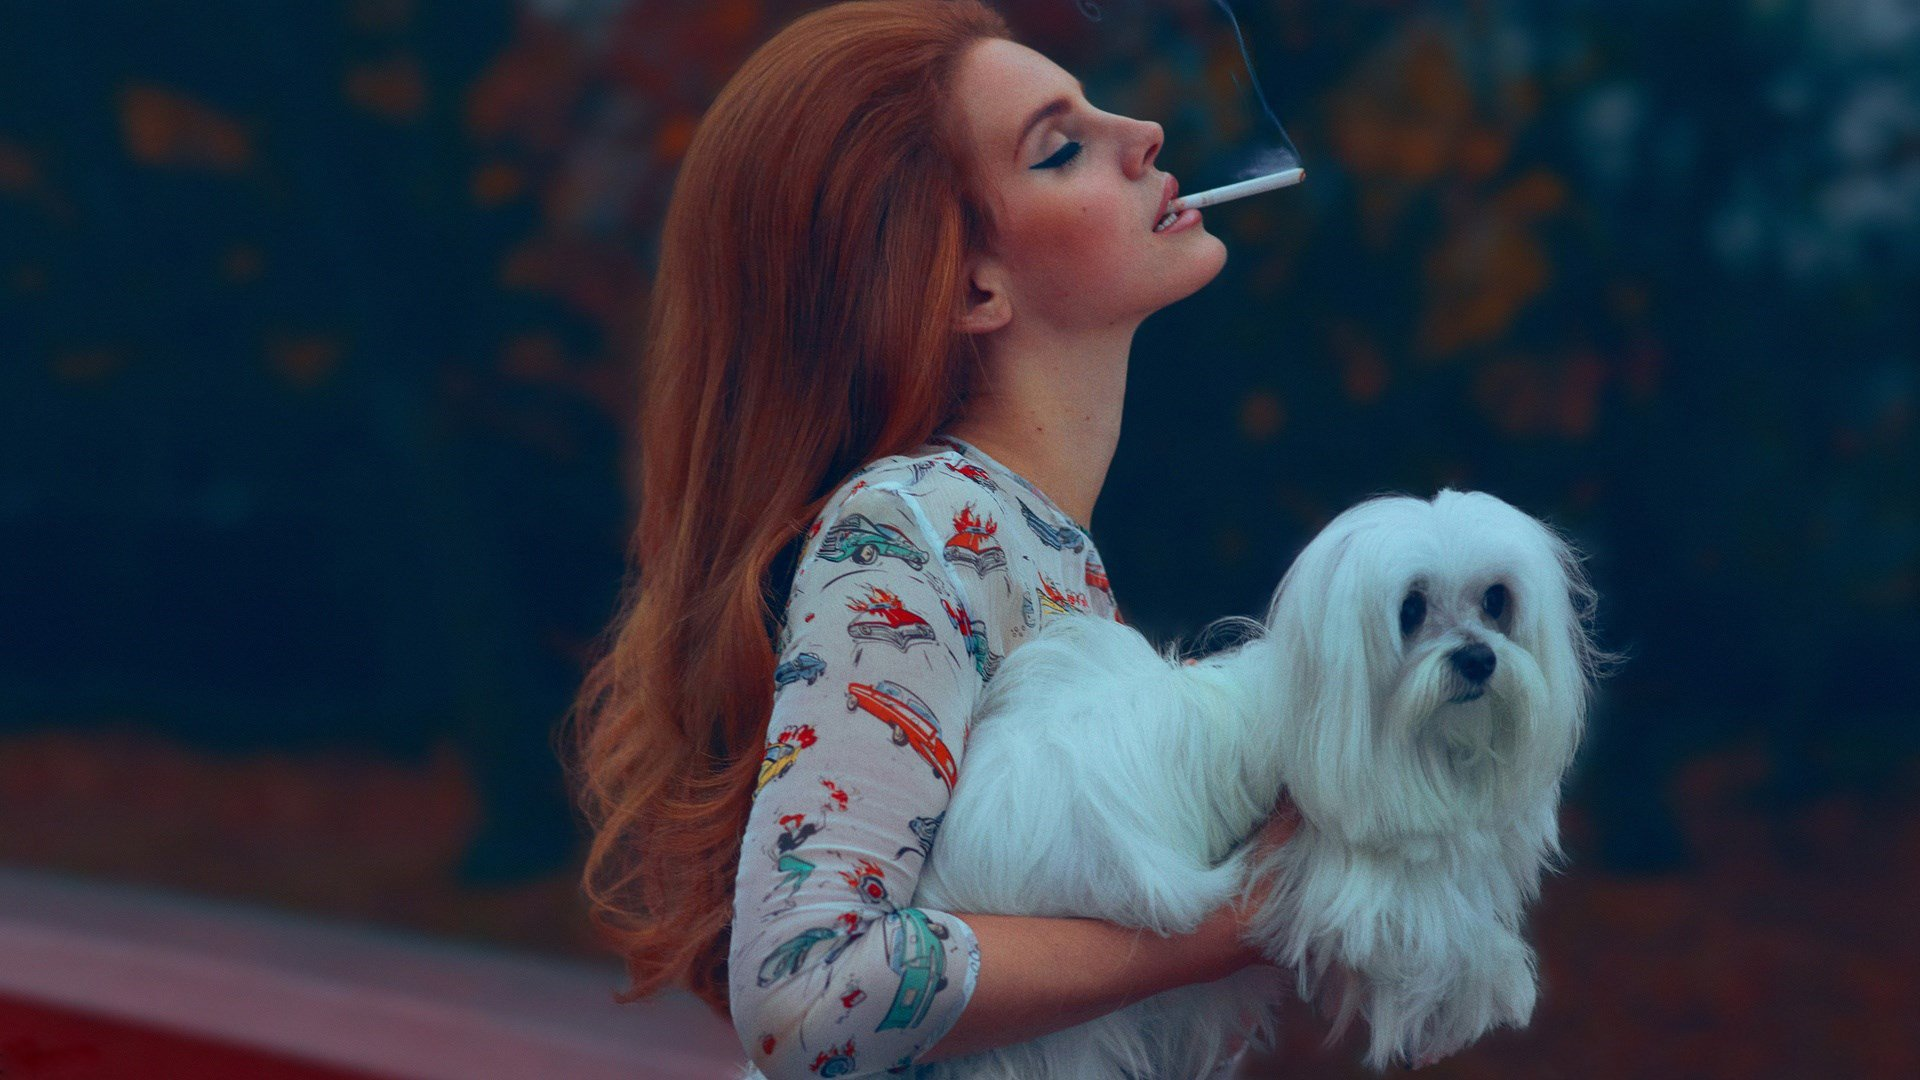 124 Lana Del Rey HD Wallpapers Background Images 1920x1080